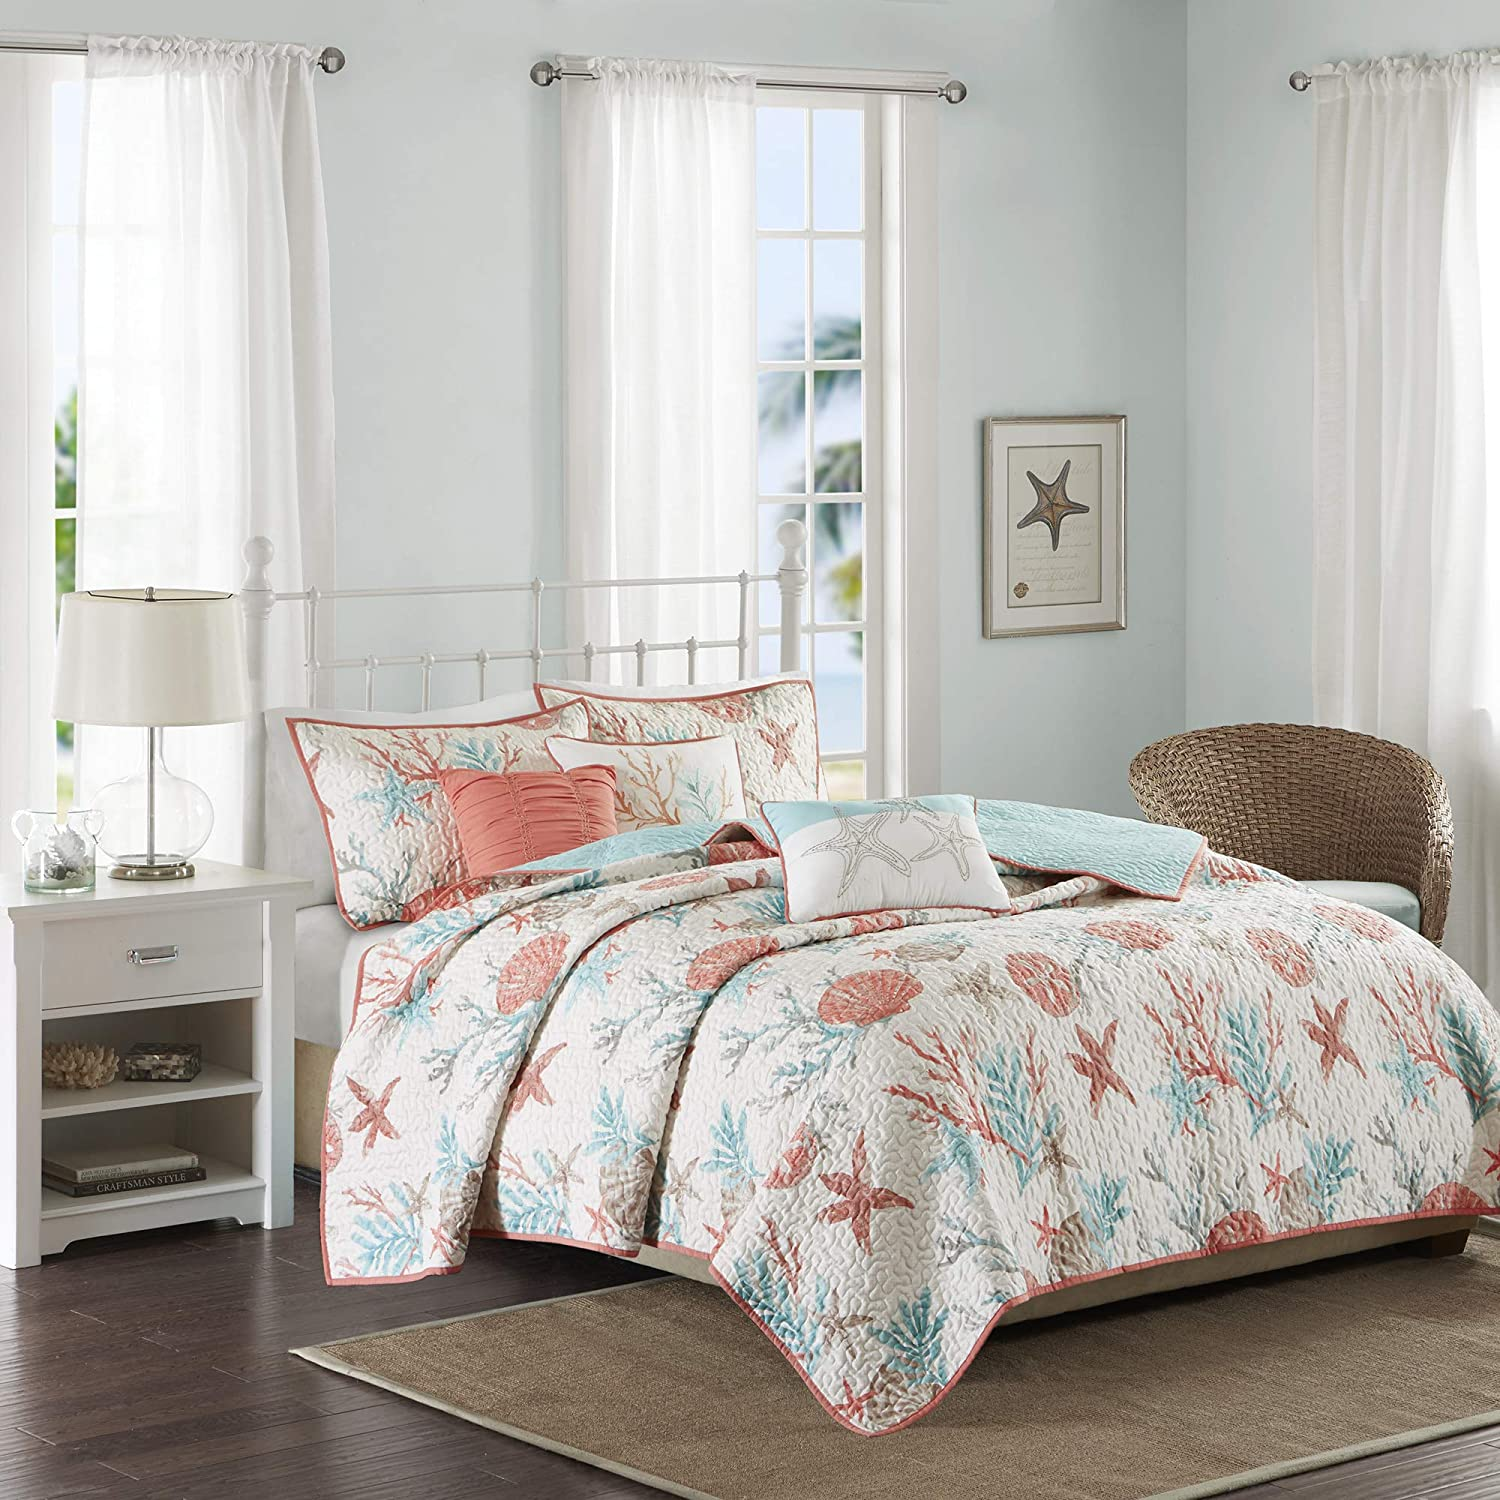 Madison Park Pebble Beach 6 Piece Quilted Coverlet Set, Coral, Cal King, King/California King,